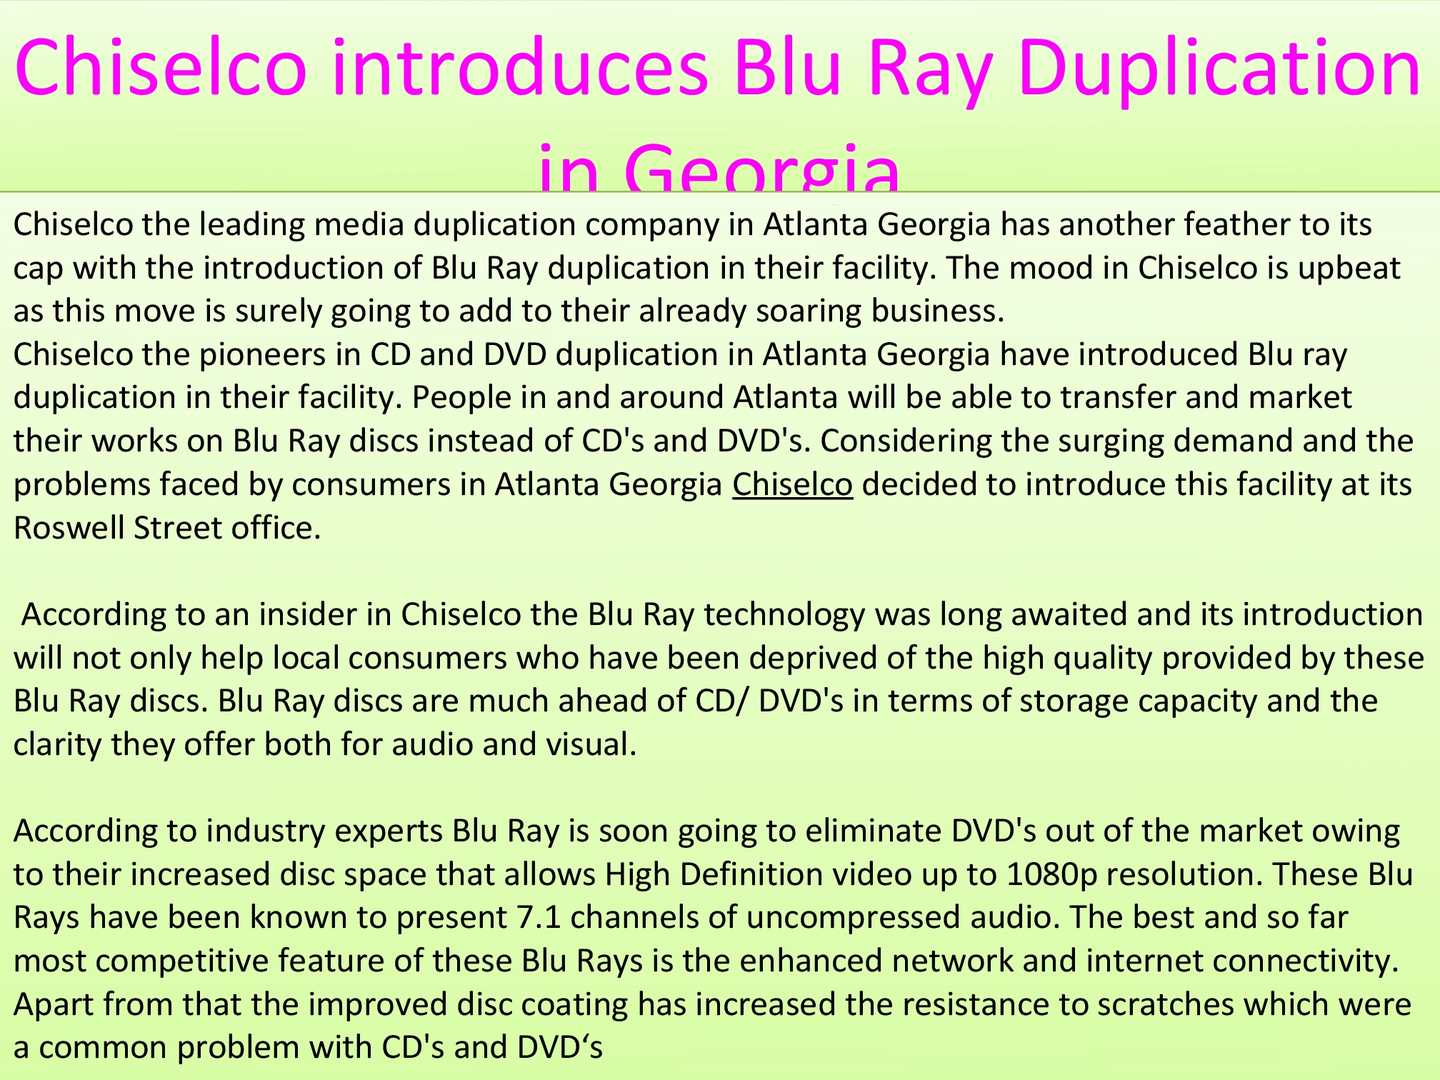 Calaméo - Chiselco introduces Blu Ray Duplication in Georgia